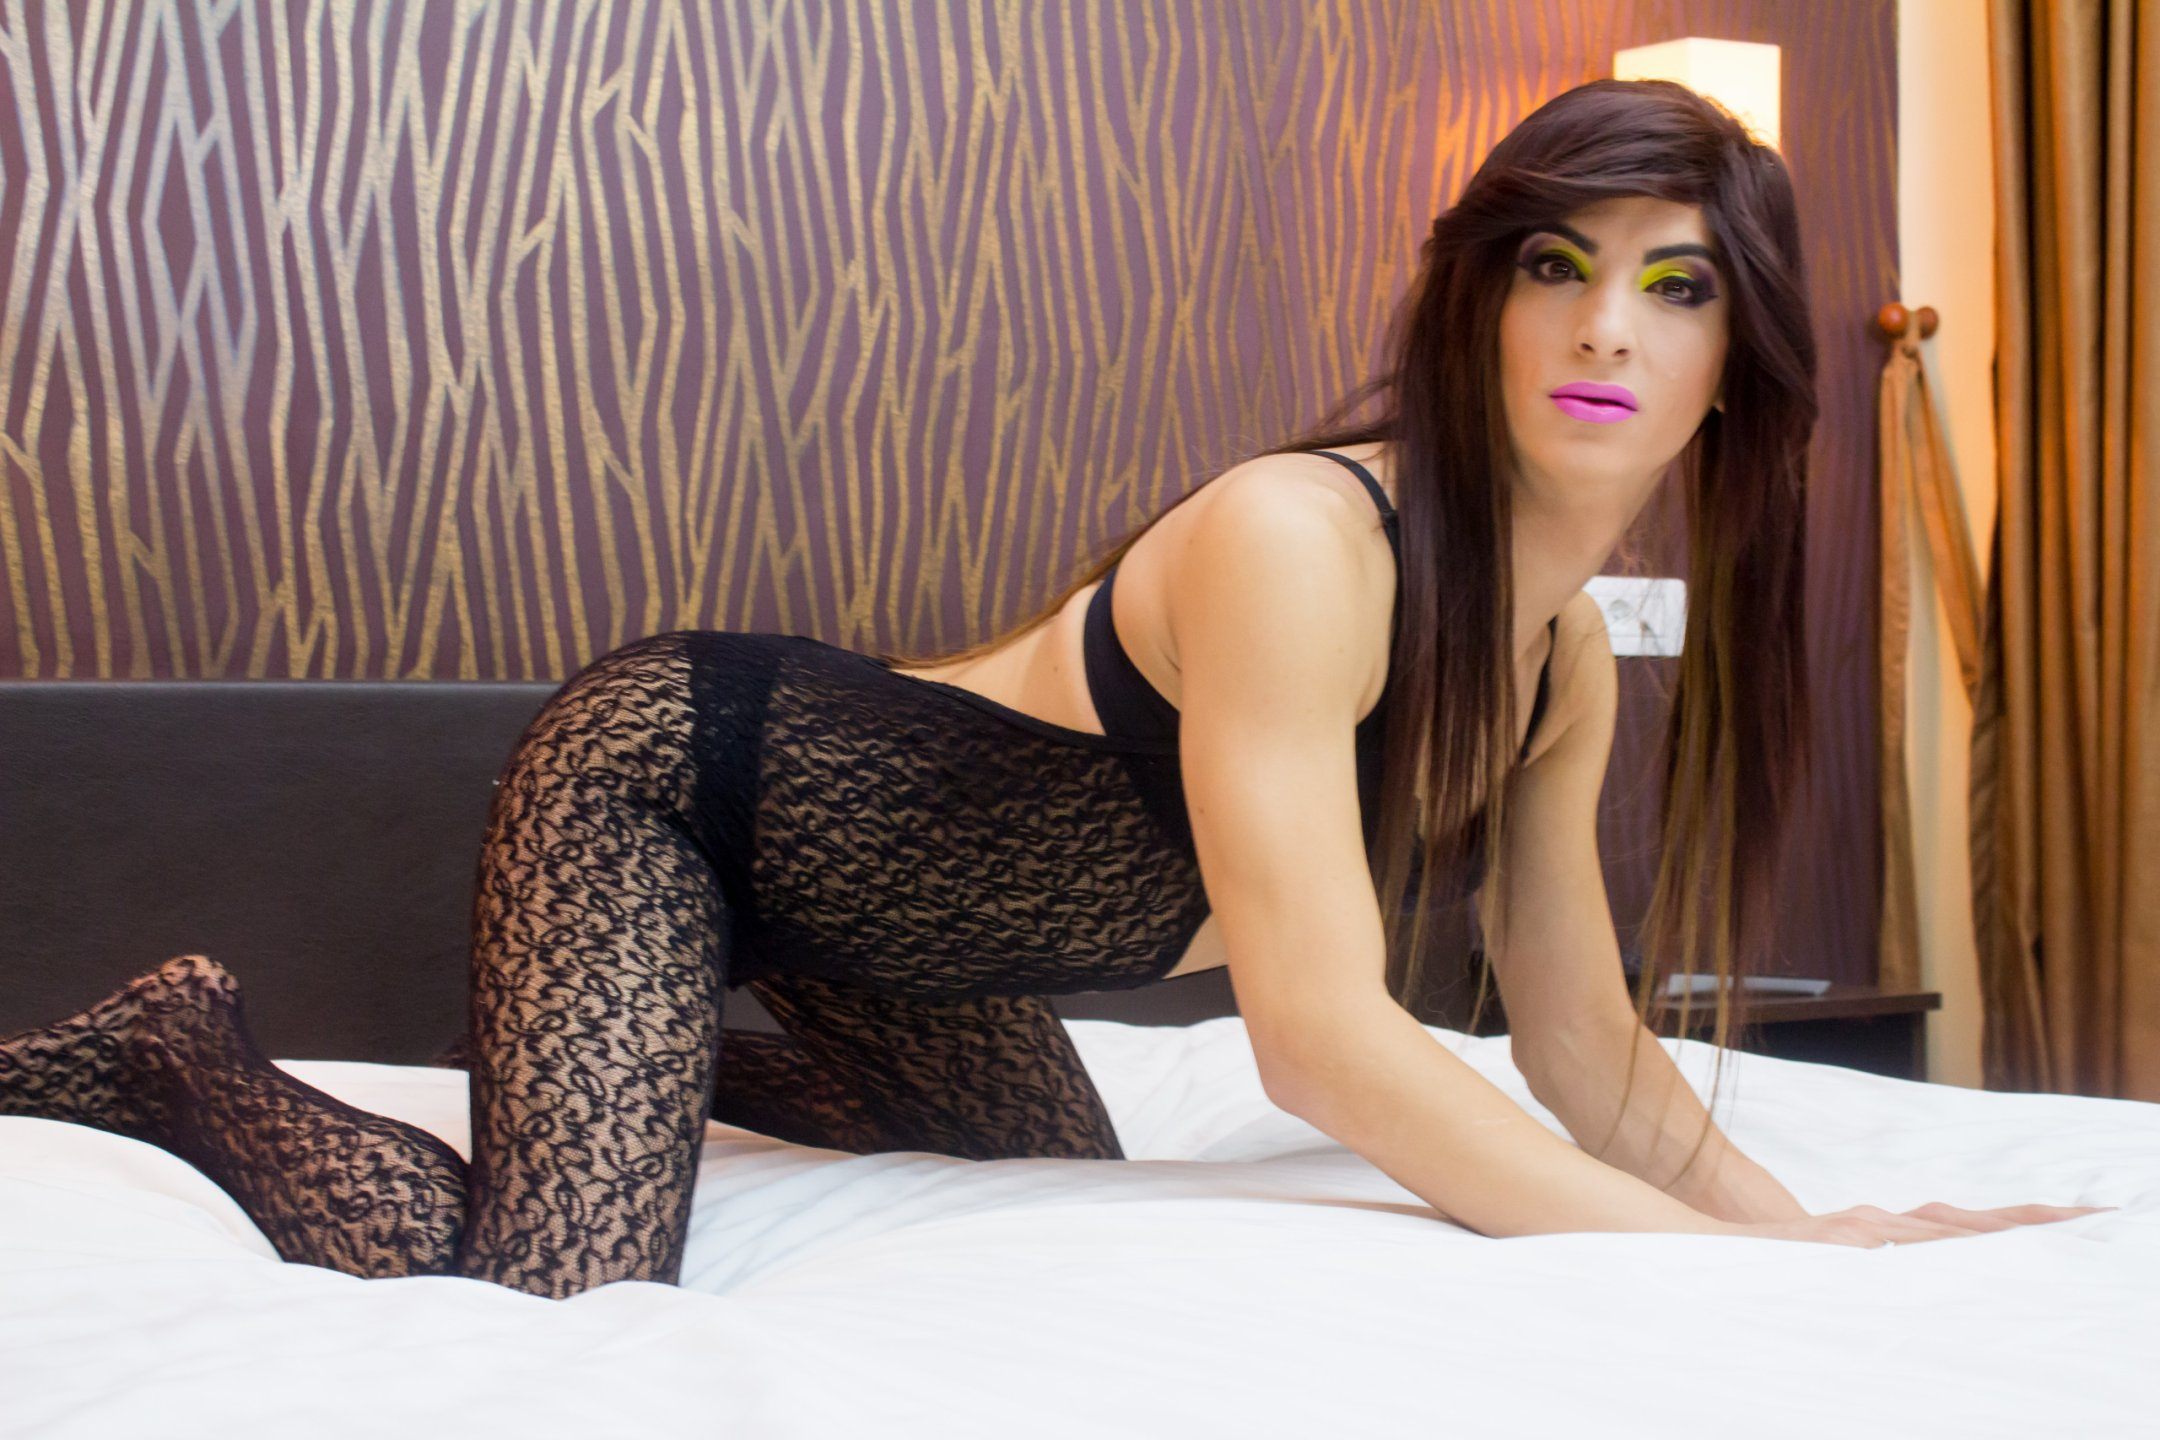 Transsexual model sites